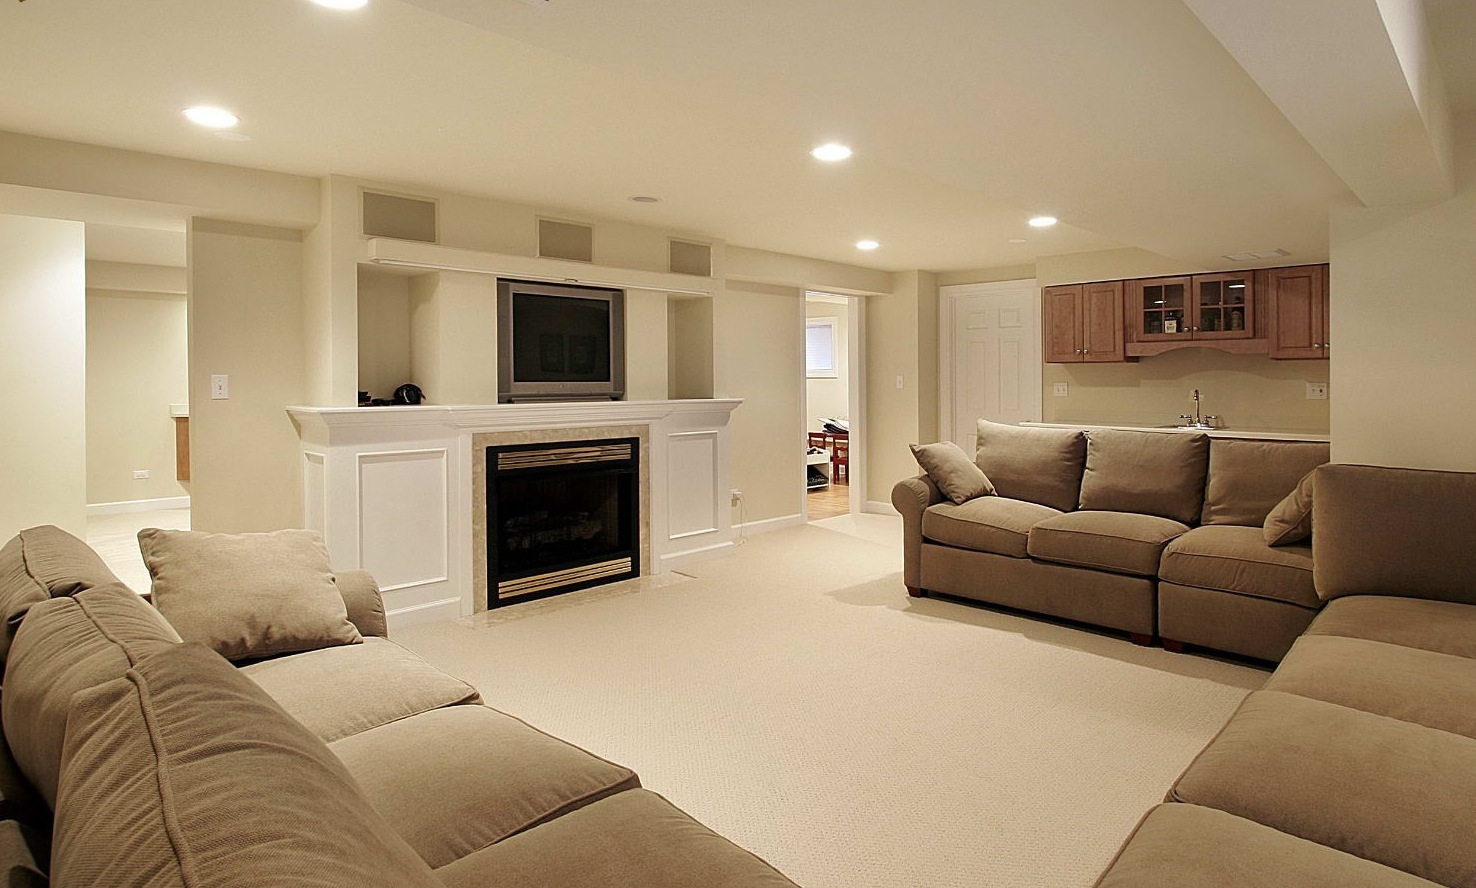 Living Room Renovation Ideas Extraordinary 30 Basement Remodeling Ideas & Inspiration Inspiration